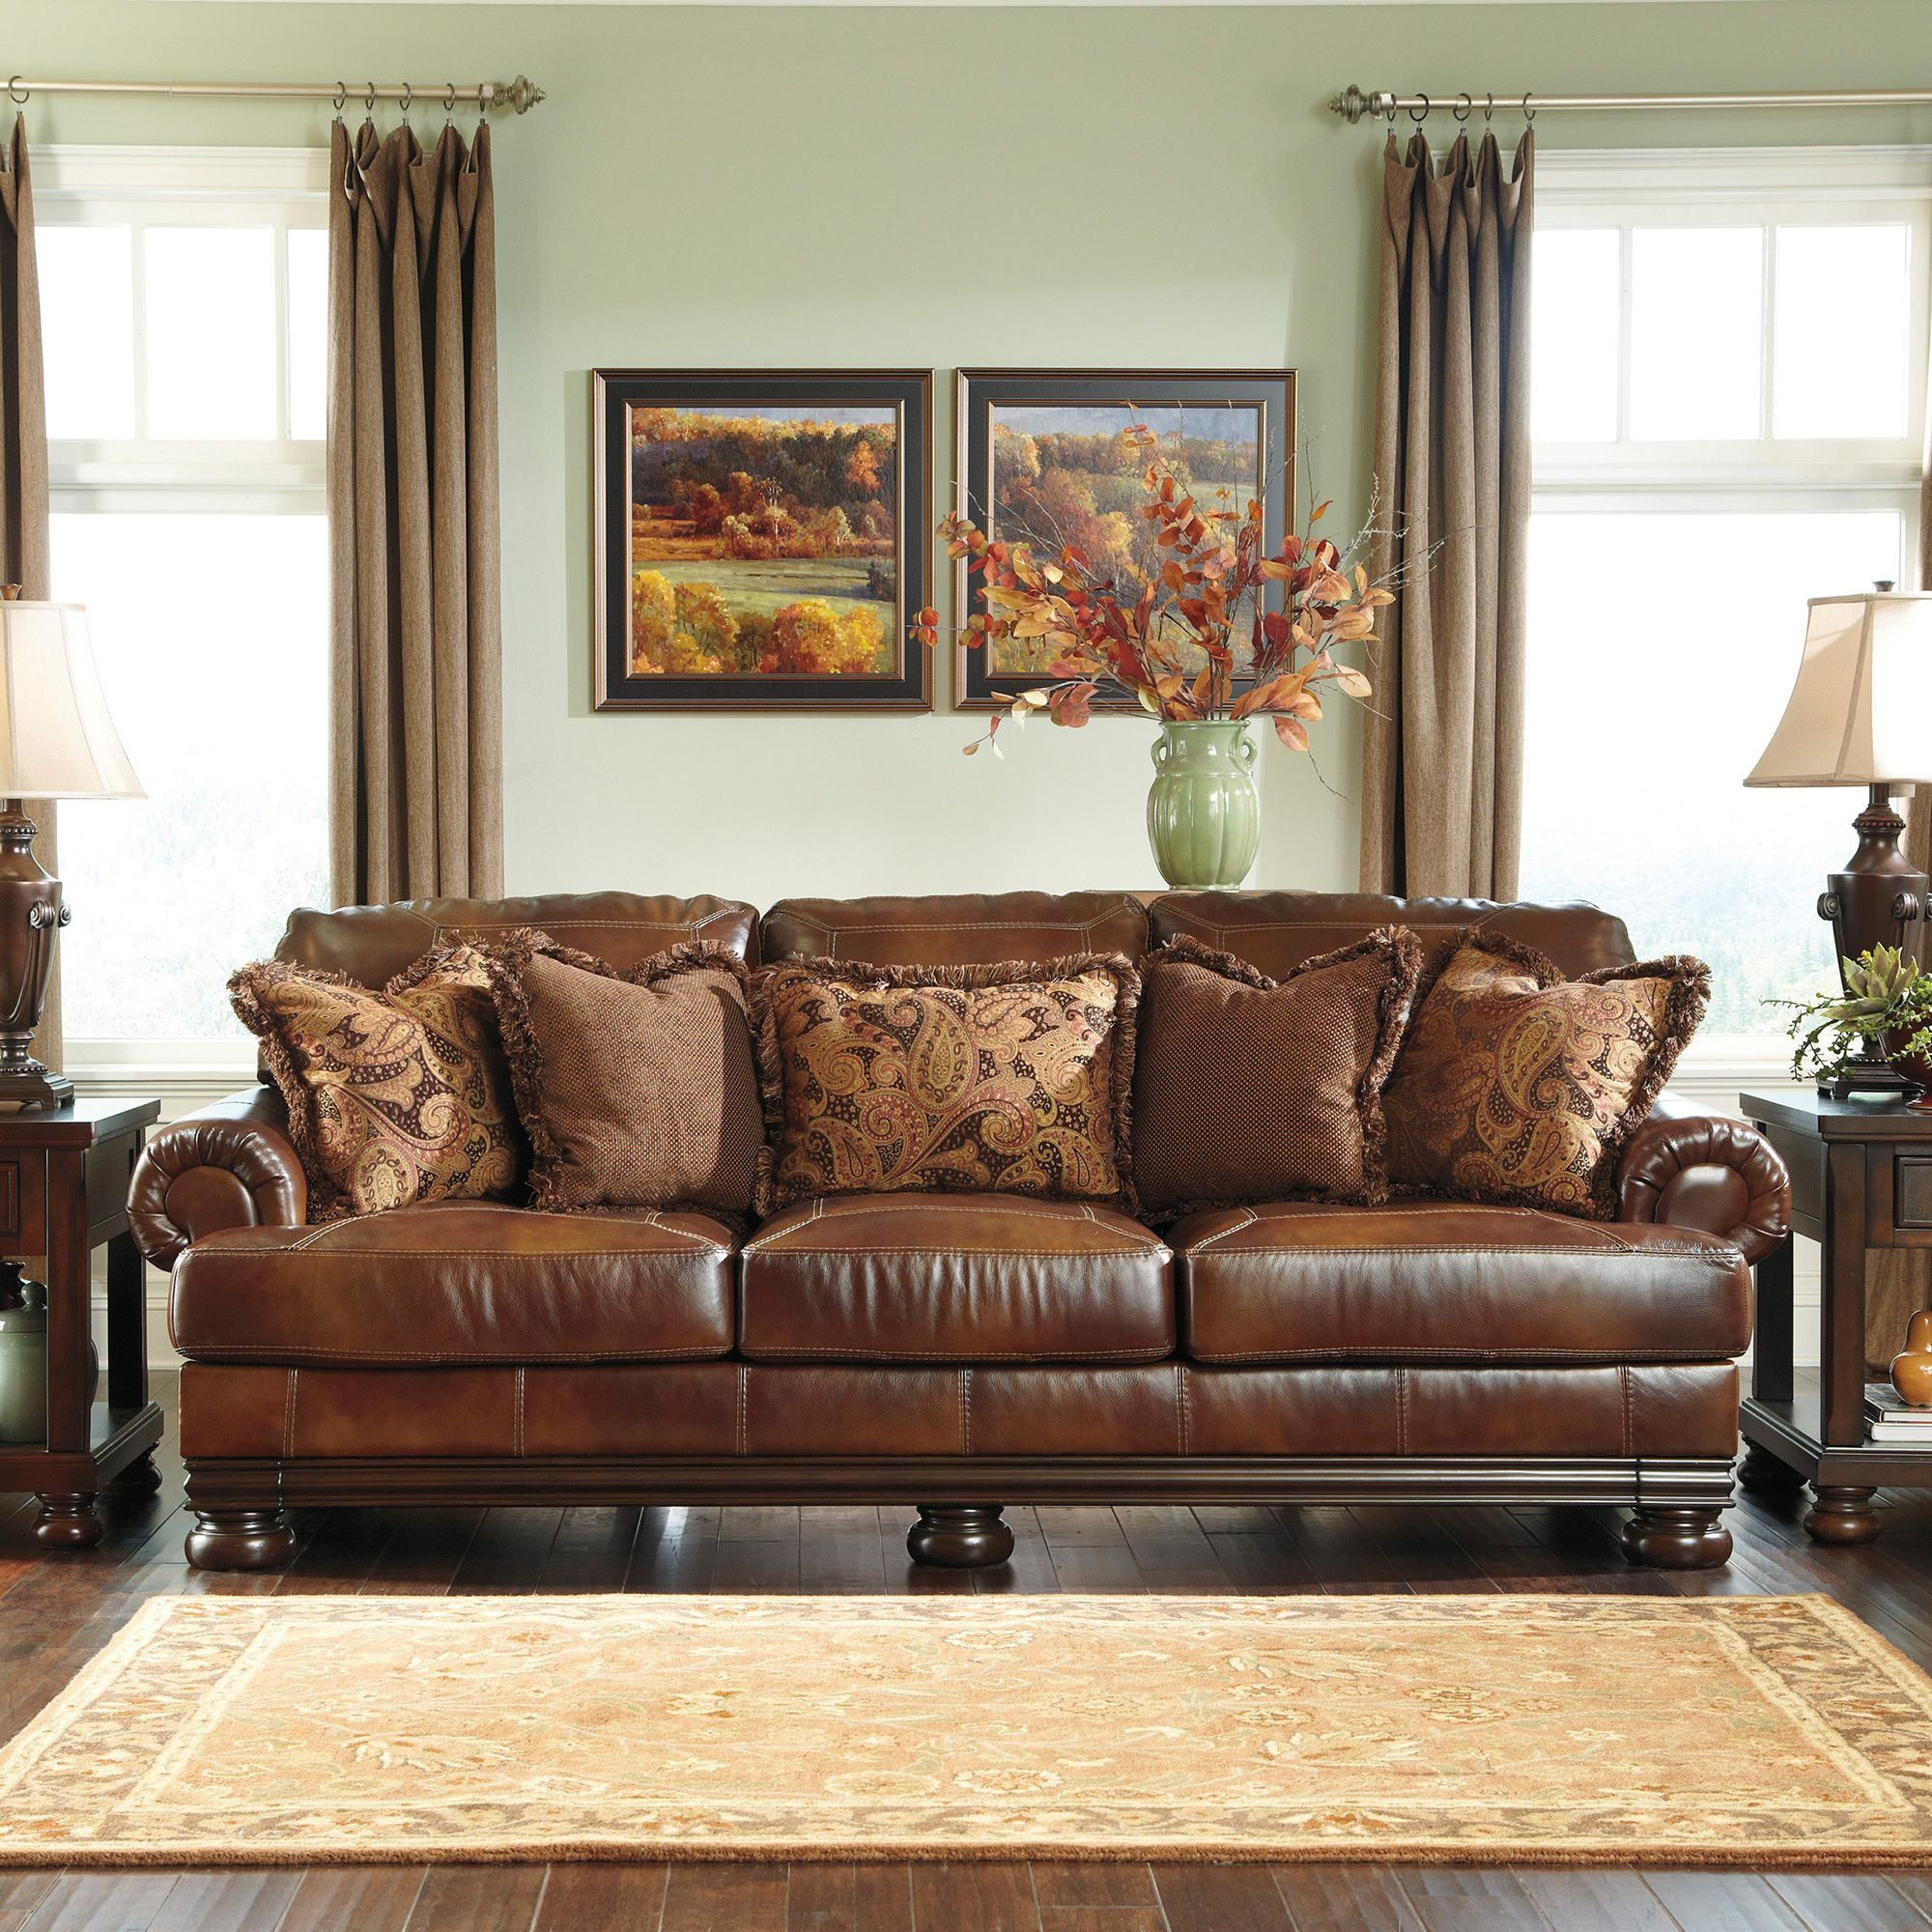 Signature Designs by Ashley  Hutcherson  Harness Brown Leather Sofa    Overstock com Shopping. Signature Designs by Ashley  Hutcherson  Harness Brown Leather